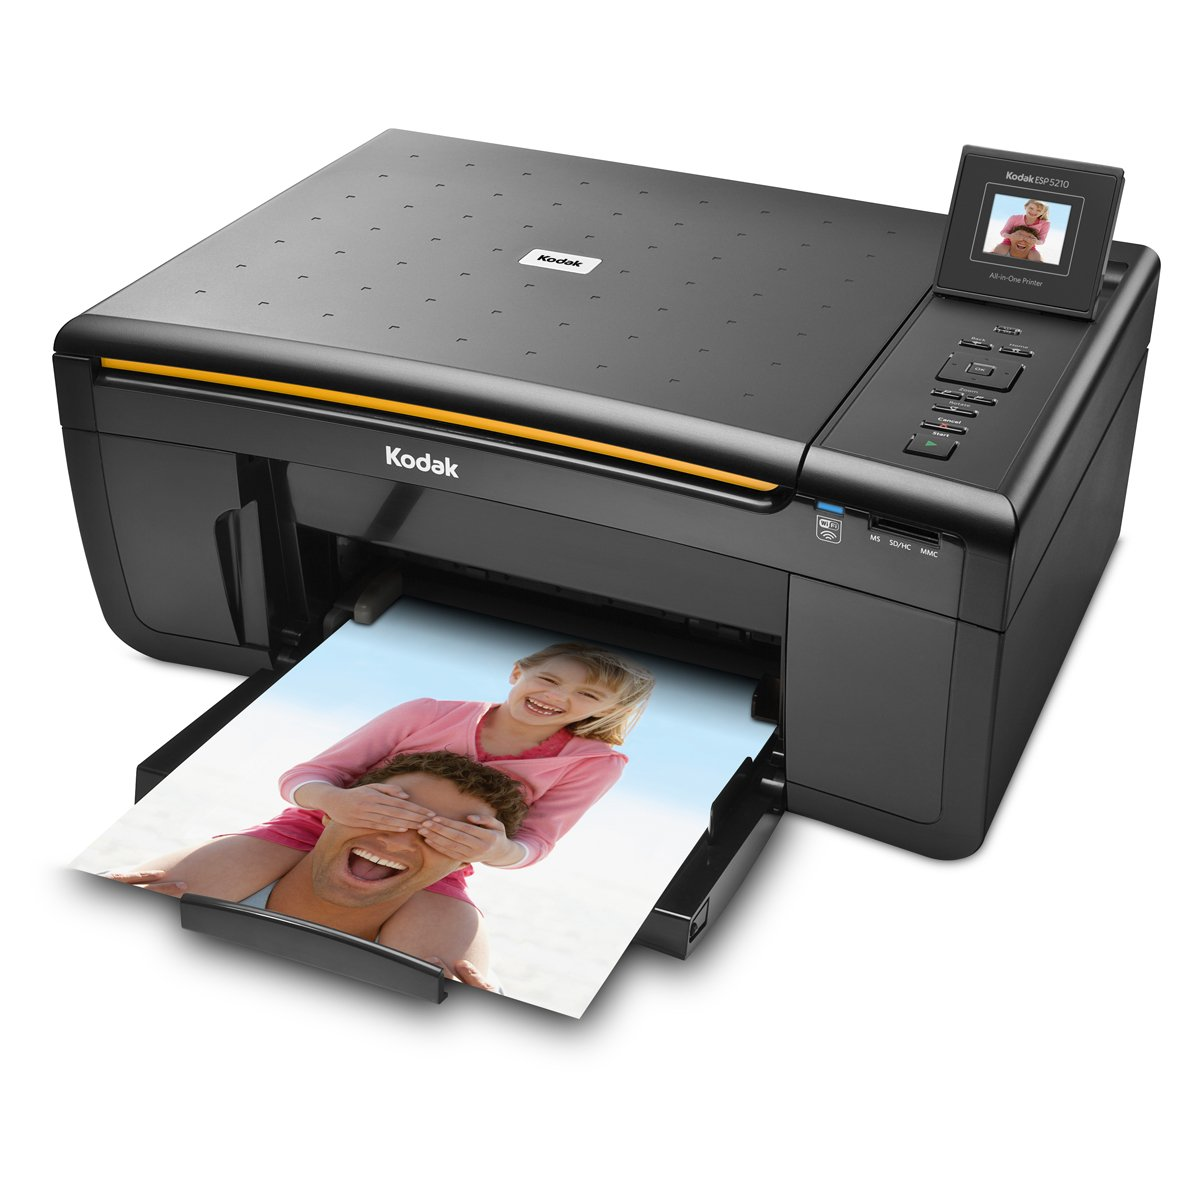 kodak esp 7 all in one printer manual